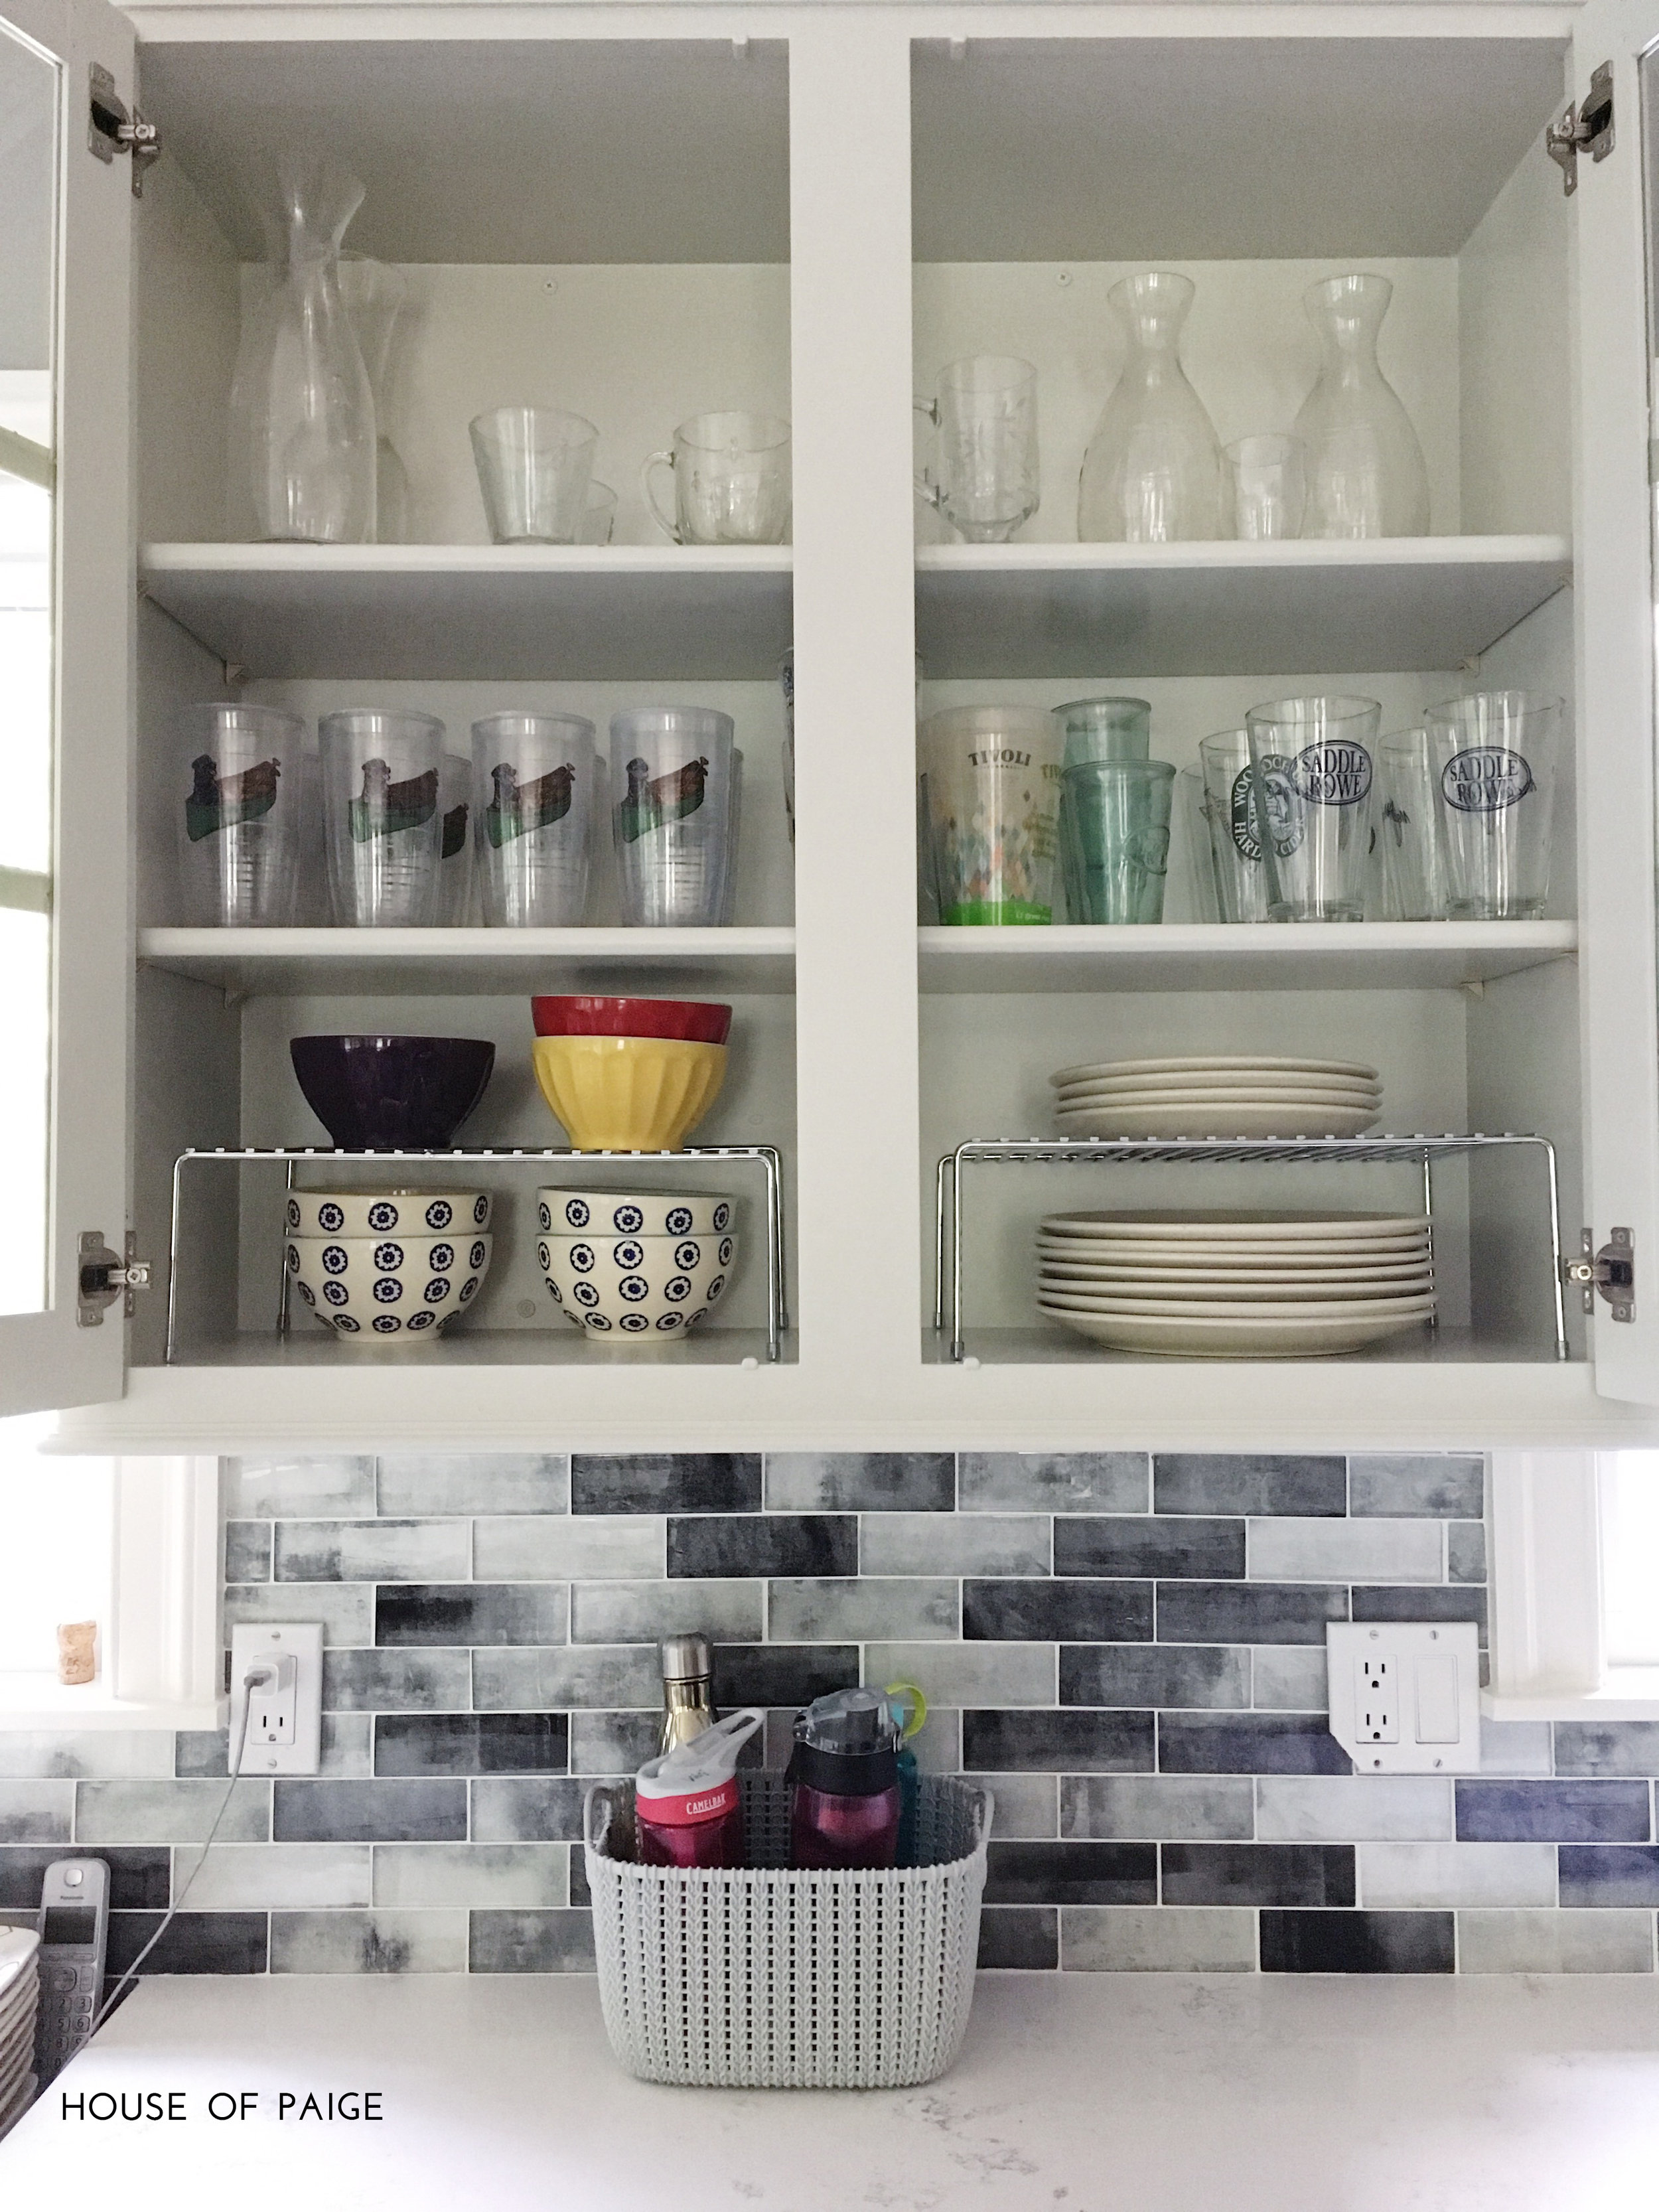 5 organization products I swear by_house of paige 3.jpg